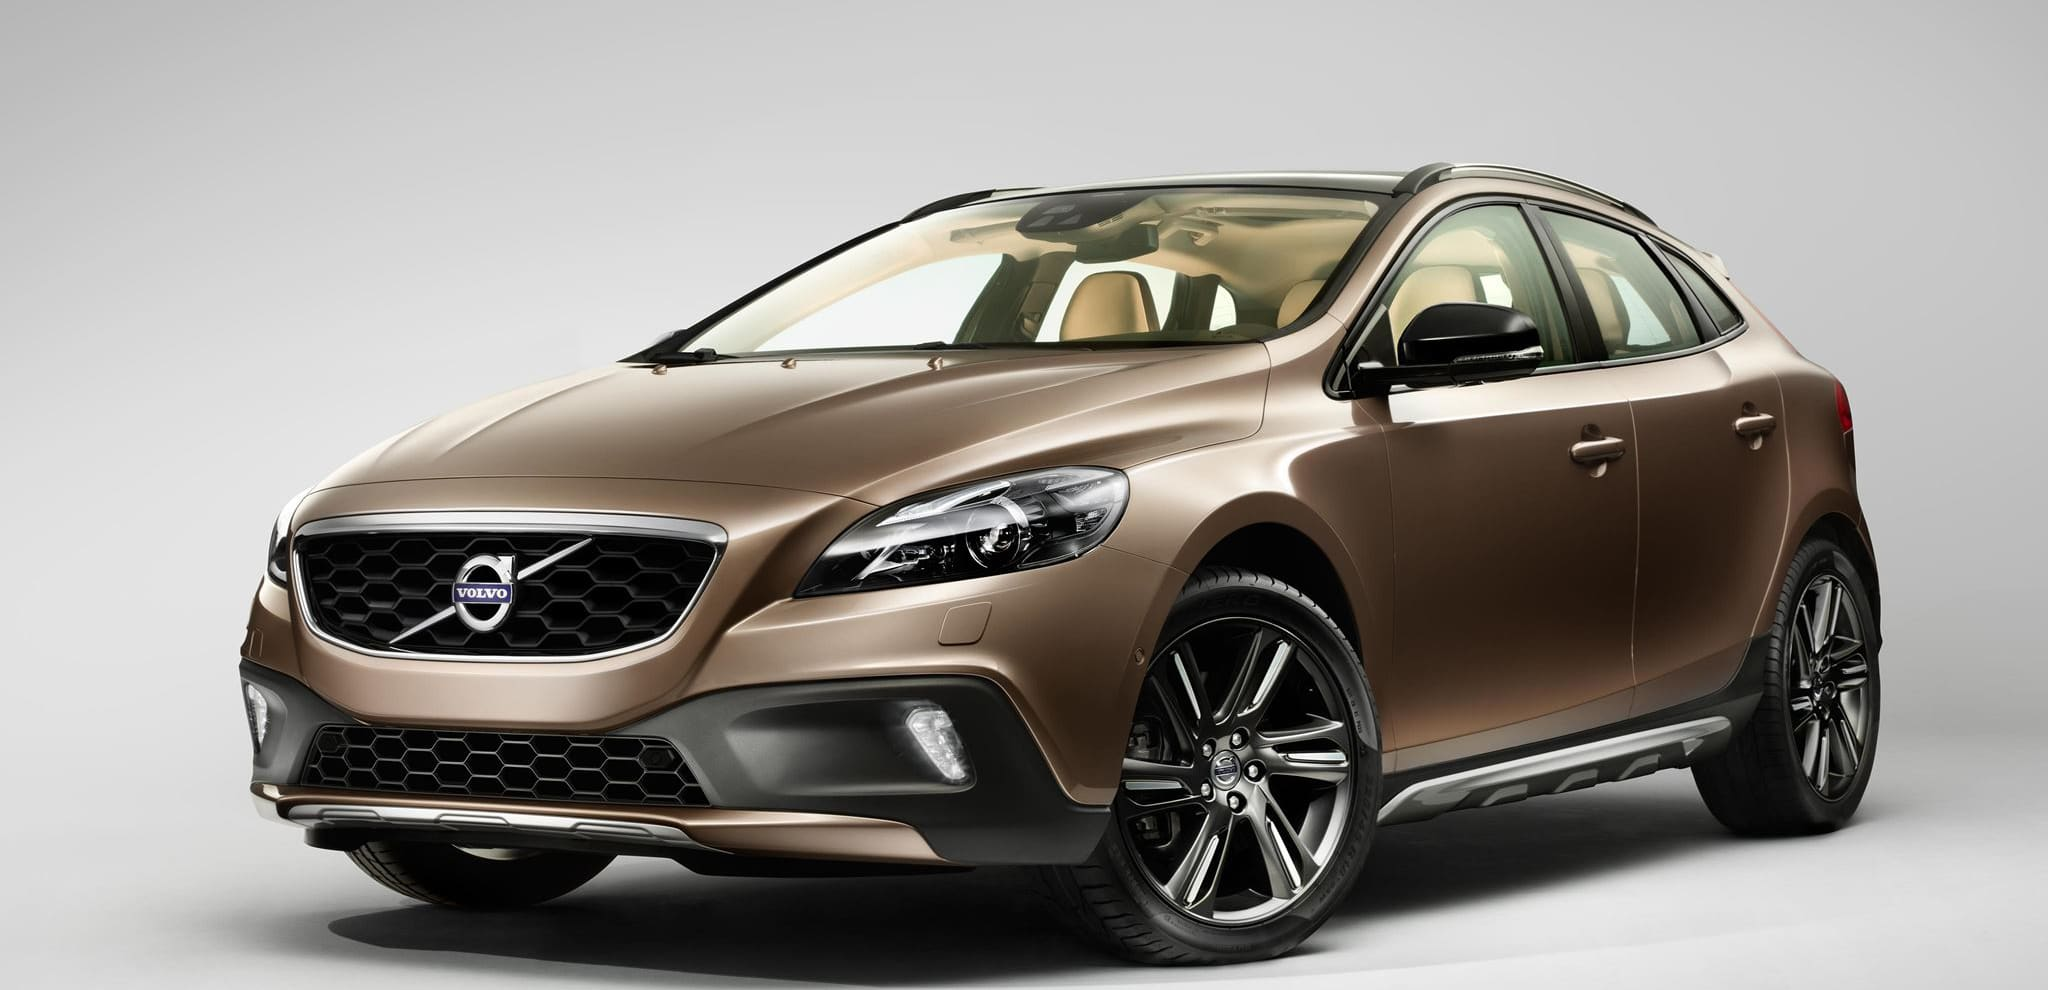 Volvo V40 Cross Country Range – Volvo